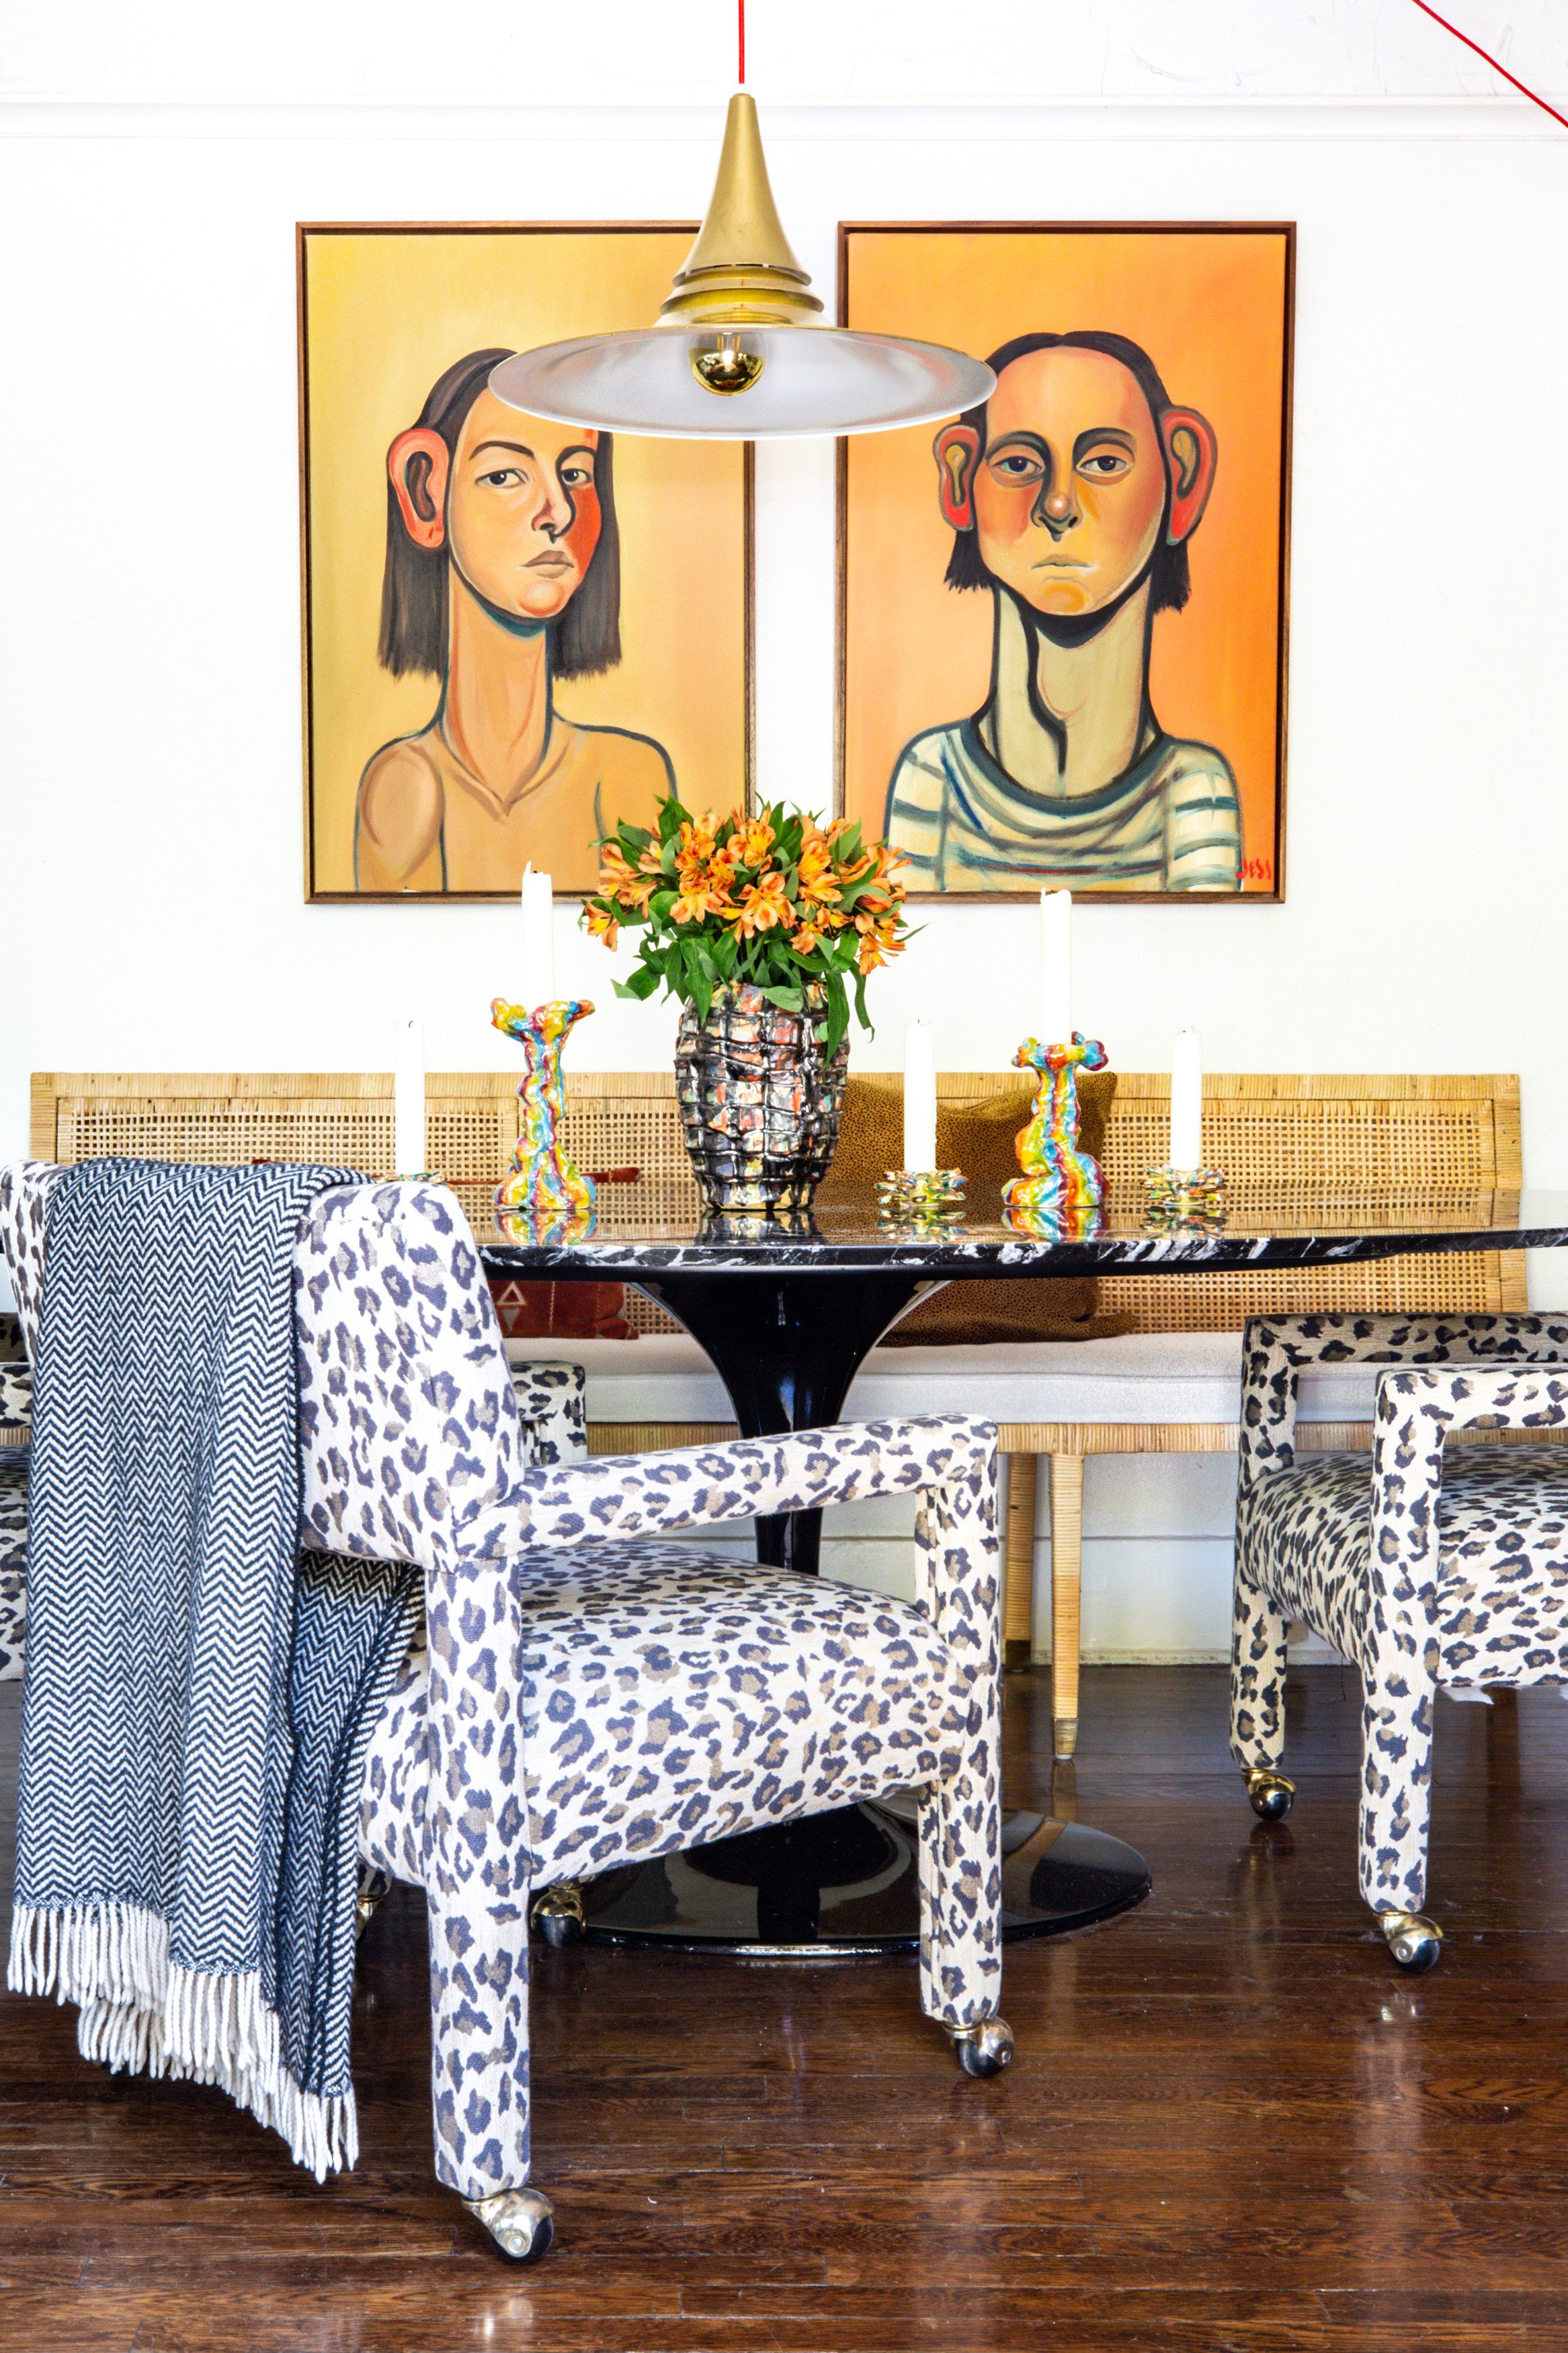 A stylish clash of pattern and color is on bold display at the dining table.Serena & Lily Bench |Missoni Throw |Saarinen Dining Table |Milo Baughman Style Dining Chairs |VintagePendant Light |Jackie Rines Vase |Jackie Rines Candle Holders |Jess Valice Portraits